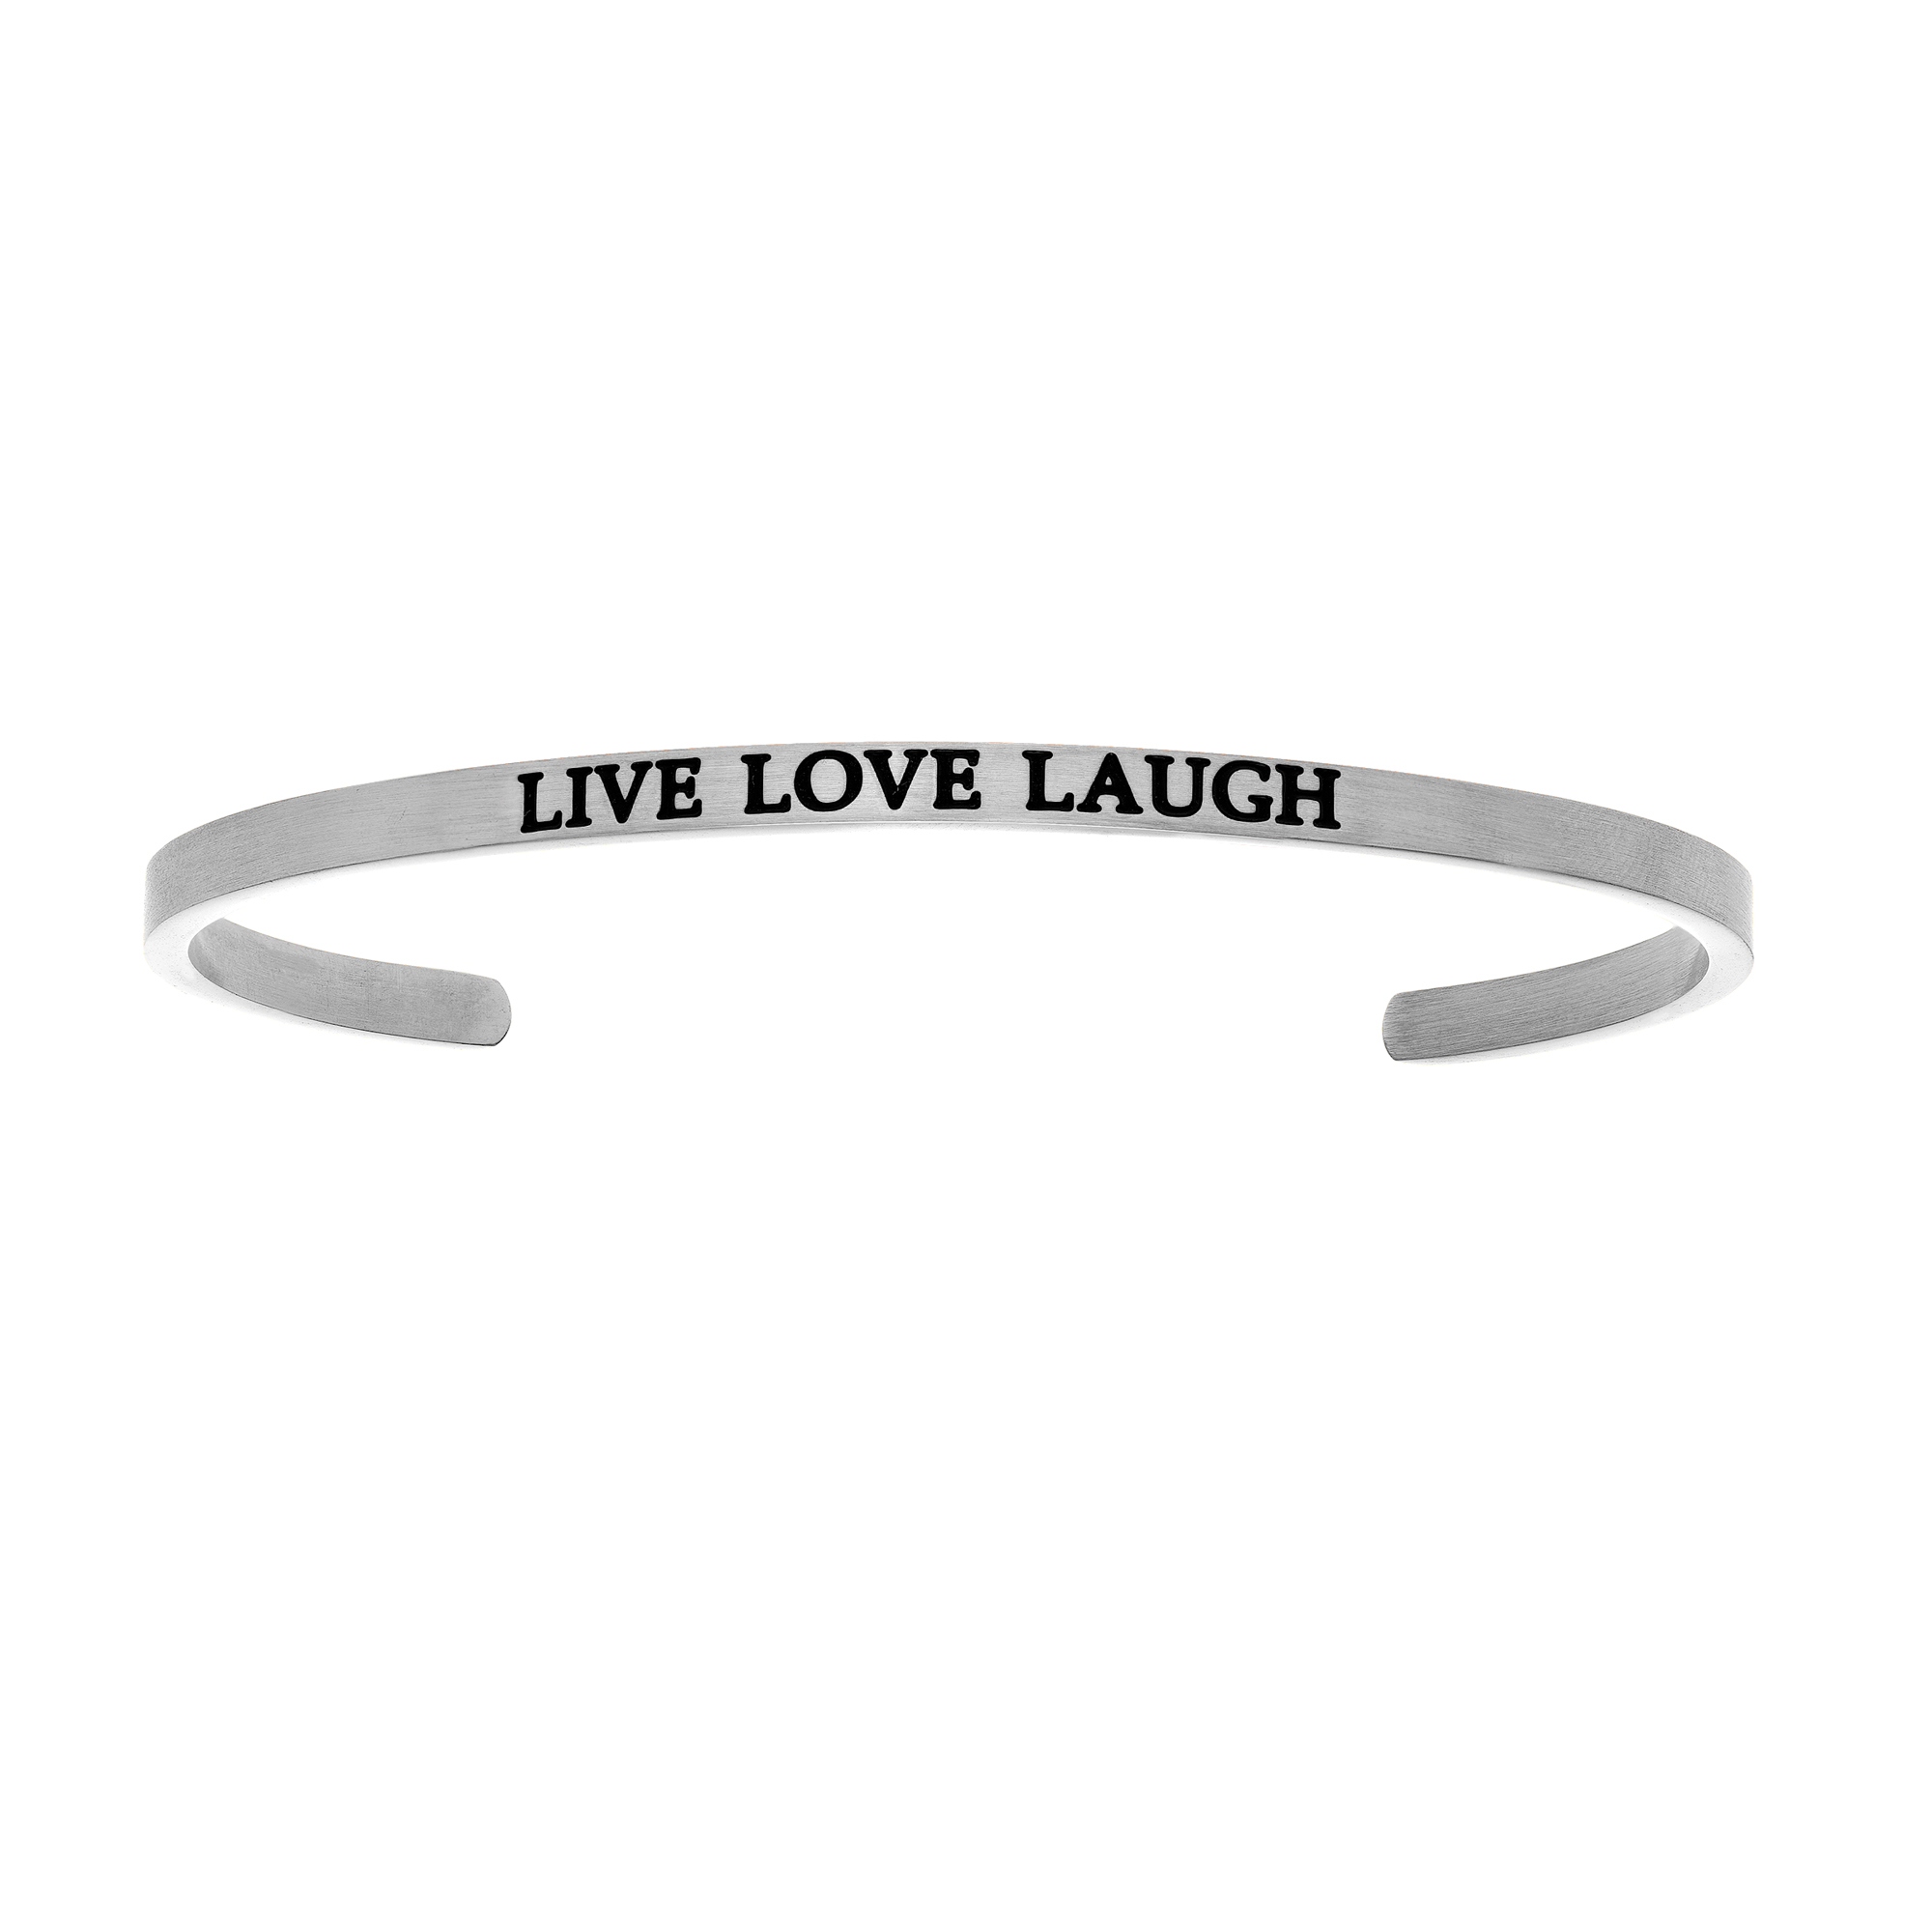 Intuitions Stainless Steel LIVE LOVE LAUGH Diamond Accent Cuff  Bangle Bracelet, 7  Each of these bracelets carries a personal message of inspiration, spirituality or just plain fun. Meant to be worn alone or stacked together for a smart, contemporary look, they're a great self-purchase or as a gift for family or friends. Intuitions are made of stainless steel and come in two styles standard cuff or friendship and fit practically any wrist. Intuitions Jewelry makes the difference in your daily life by designing and creating bracelets and bangles with motivational quotes to inspire you and your loved ones. Giving back $.25 of each bracelet to BABY2BABY